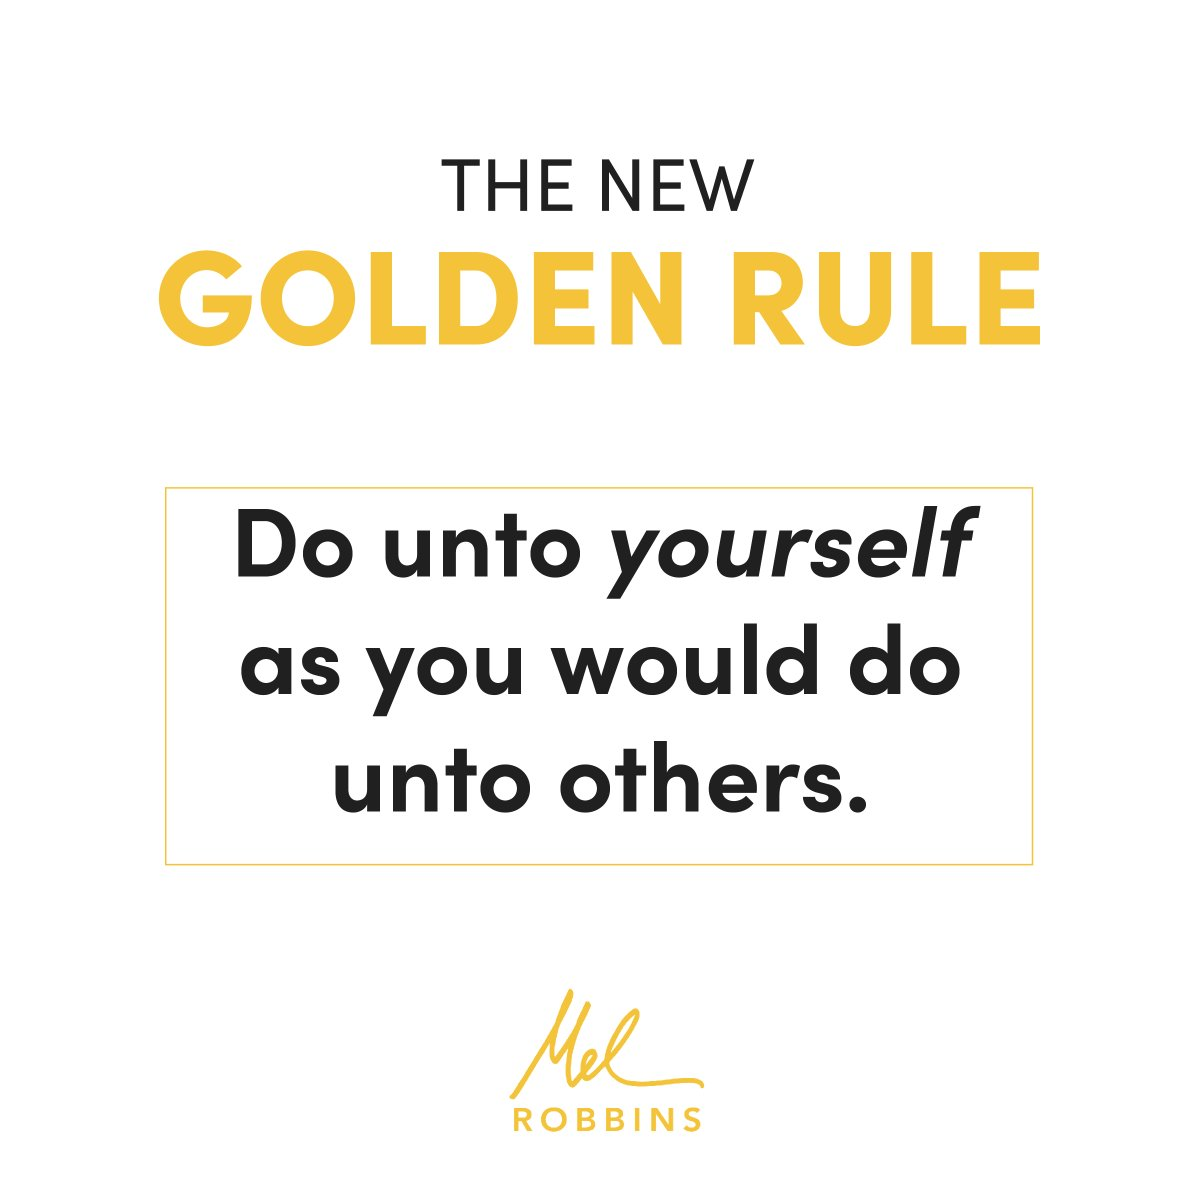 Start treating yourself with the same respect and kindness you show other people.  If you wouldn't say it to your friend, you shouldn't feel okay saying it to yourself. https://t.co/XHqQX2Uedx